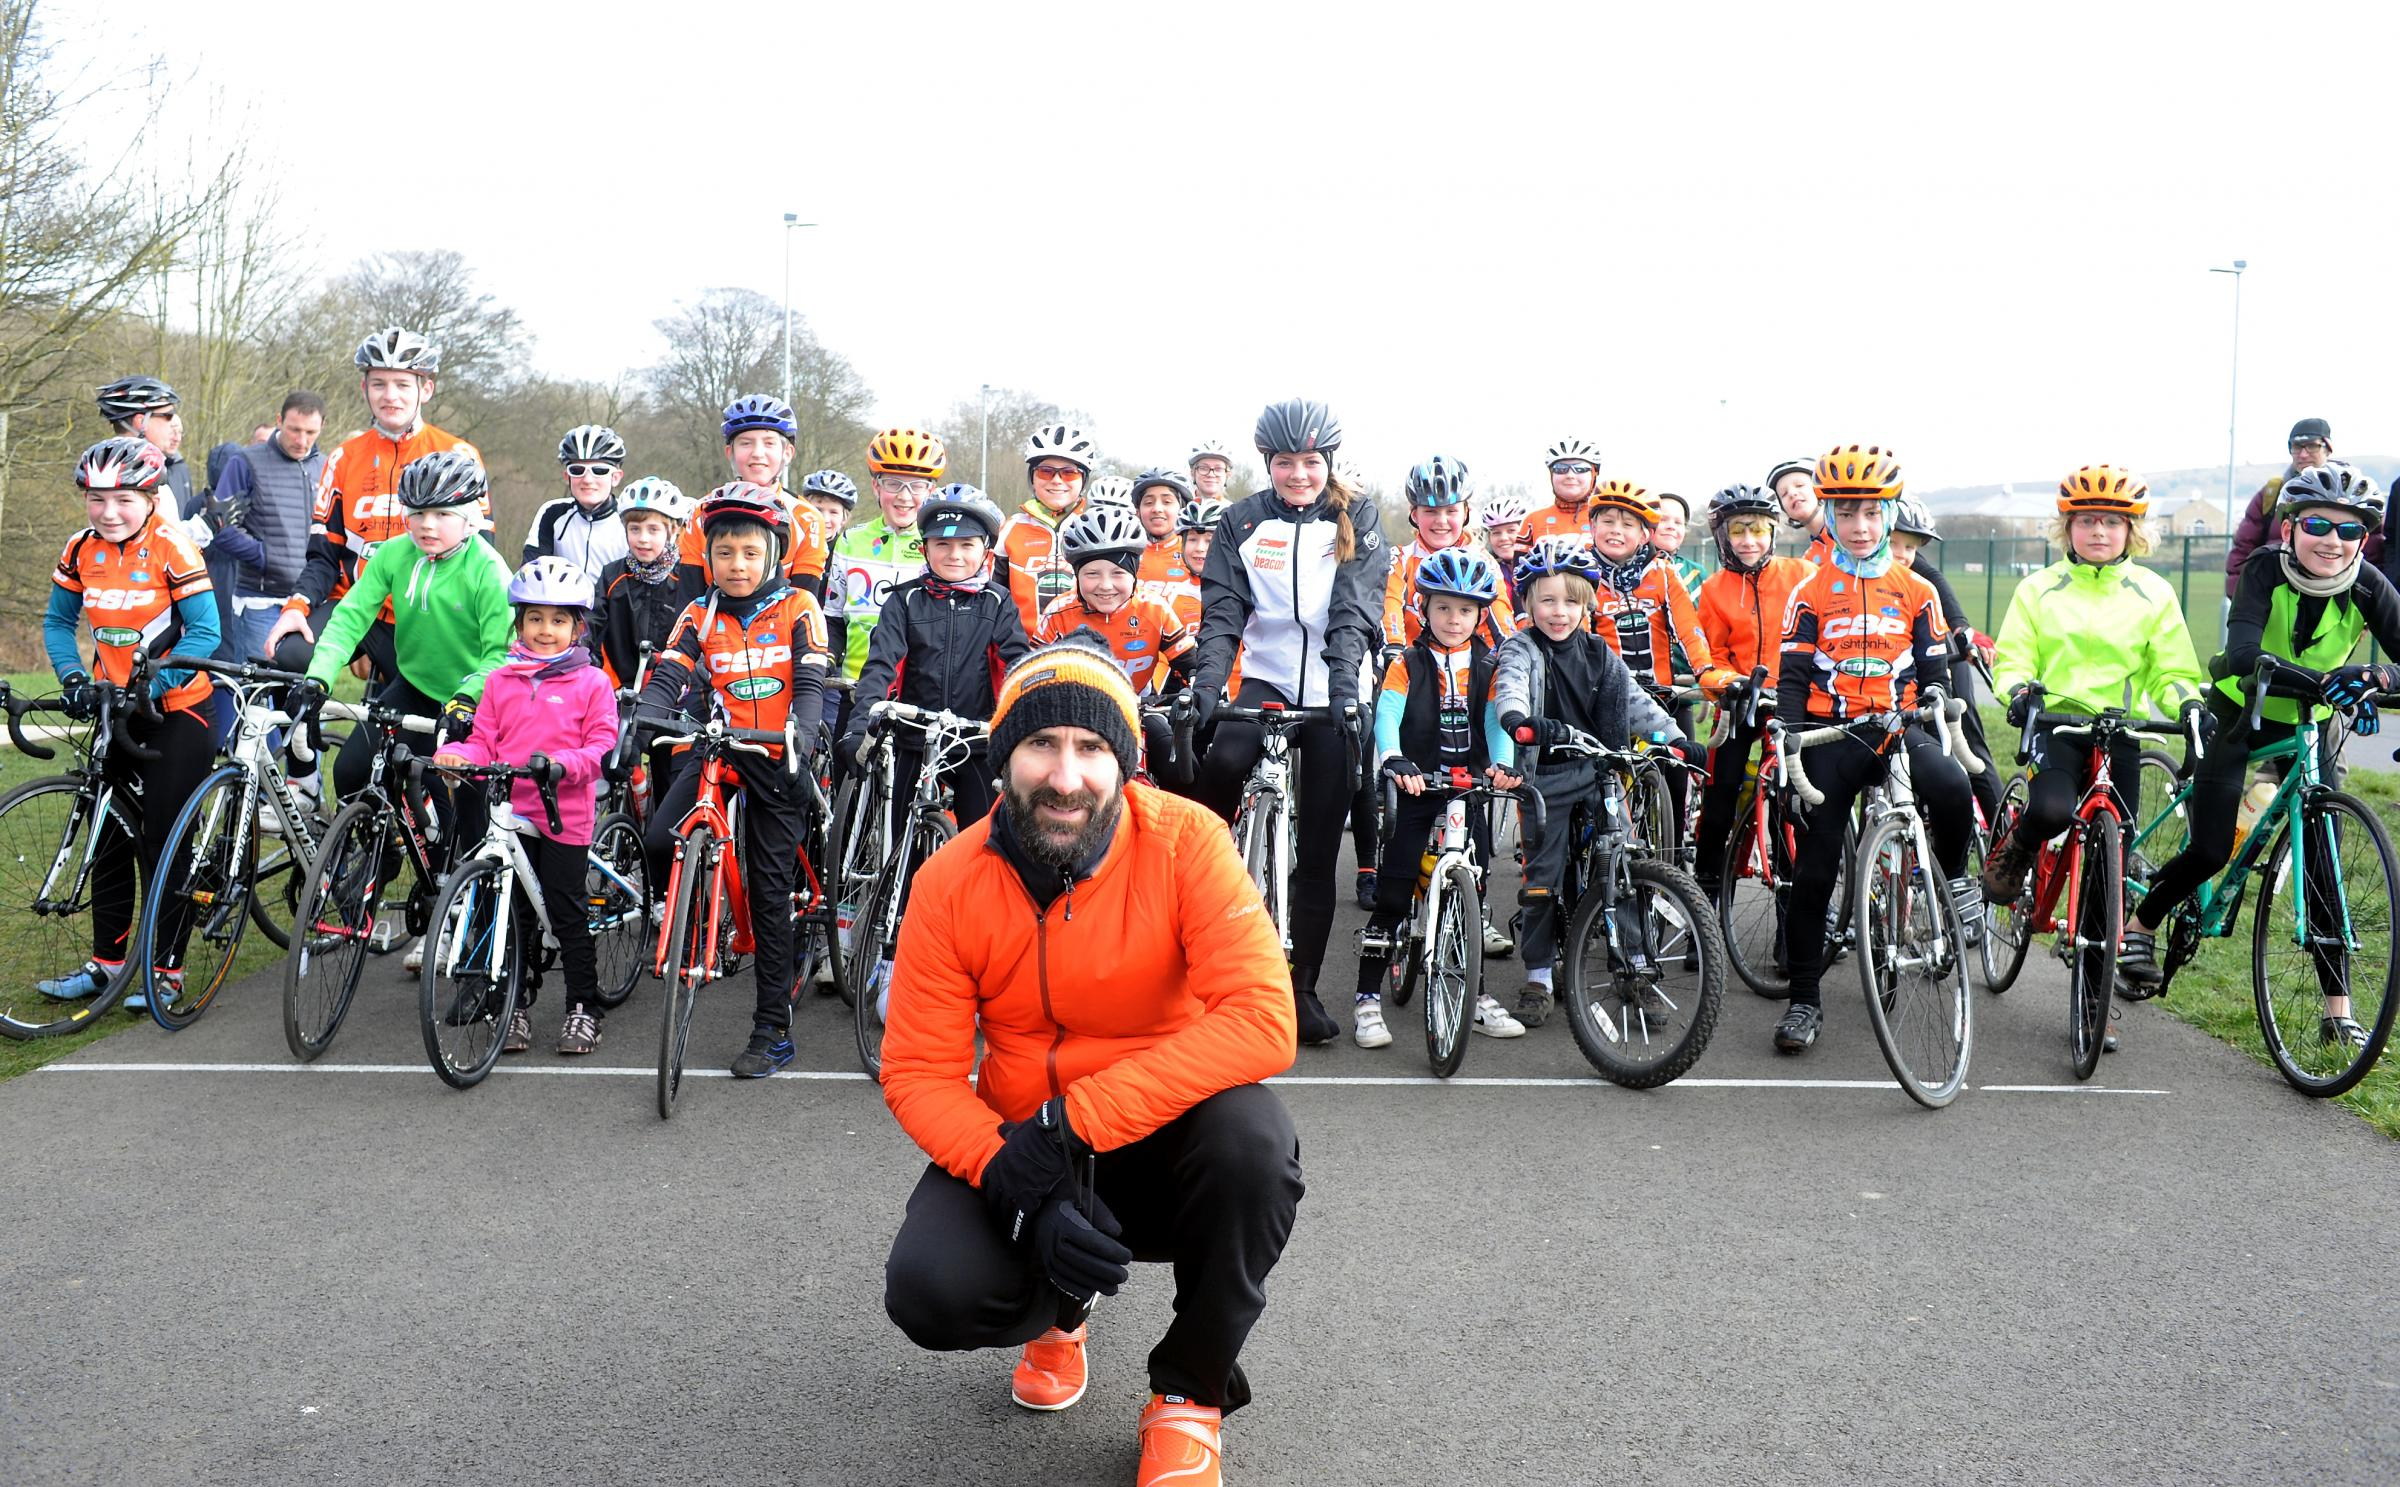 d51c4a515 Welsh aiming to put Cycle Sport Pendle on the map